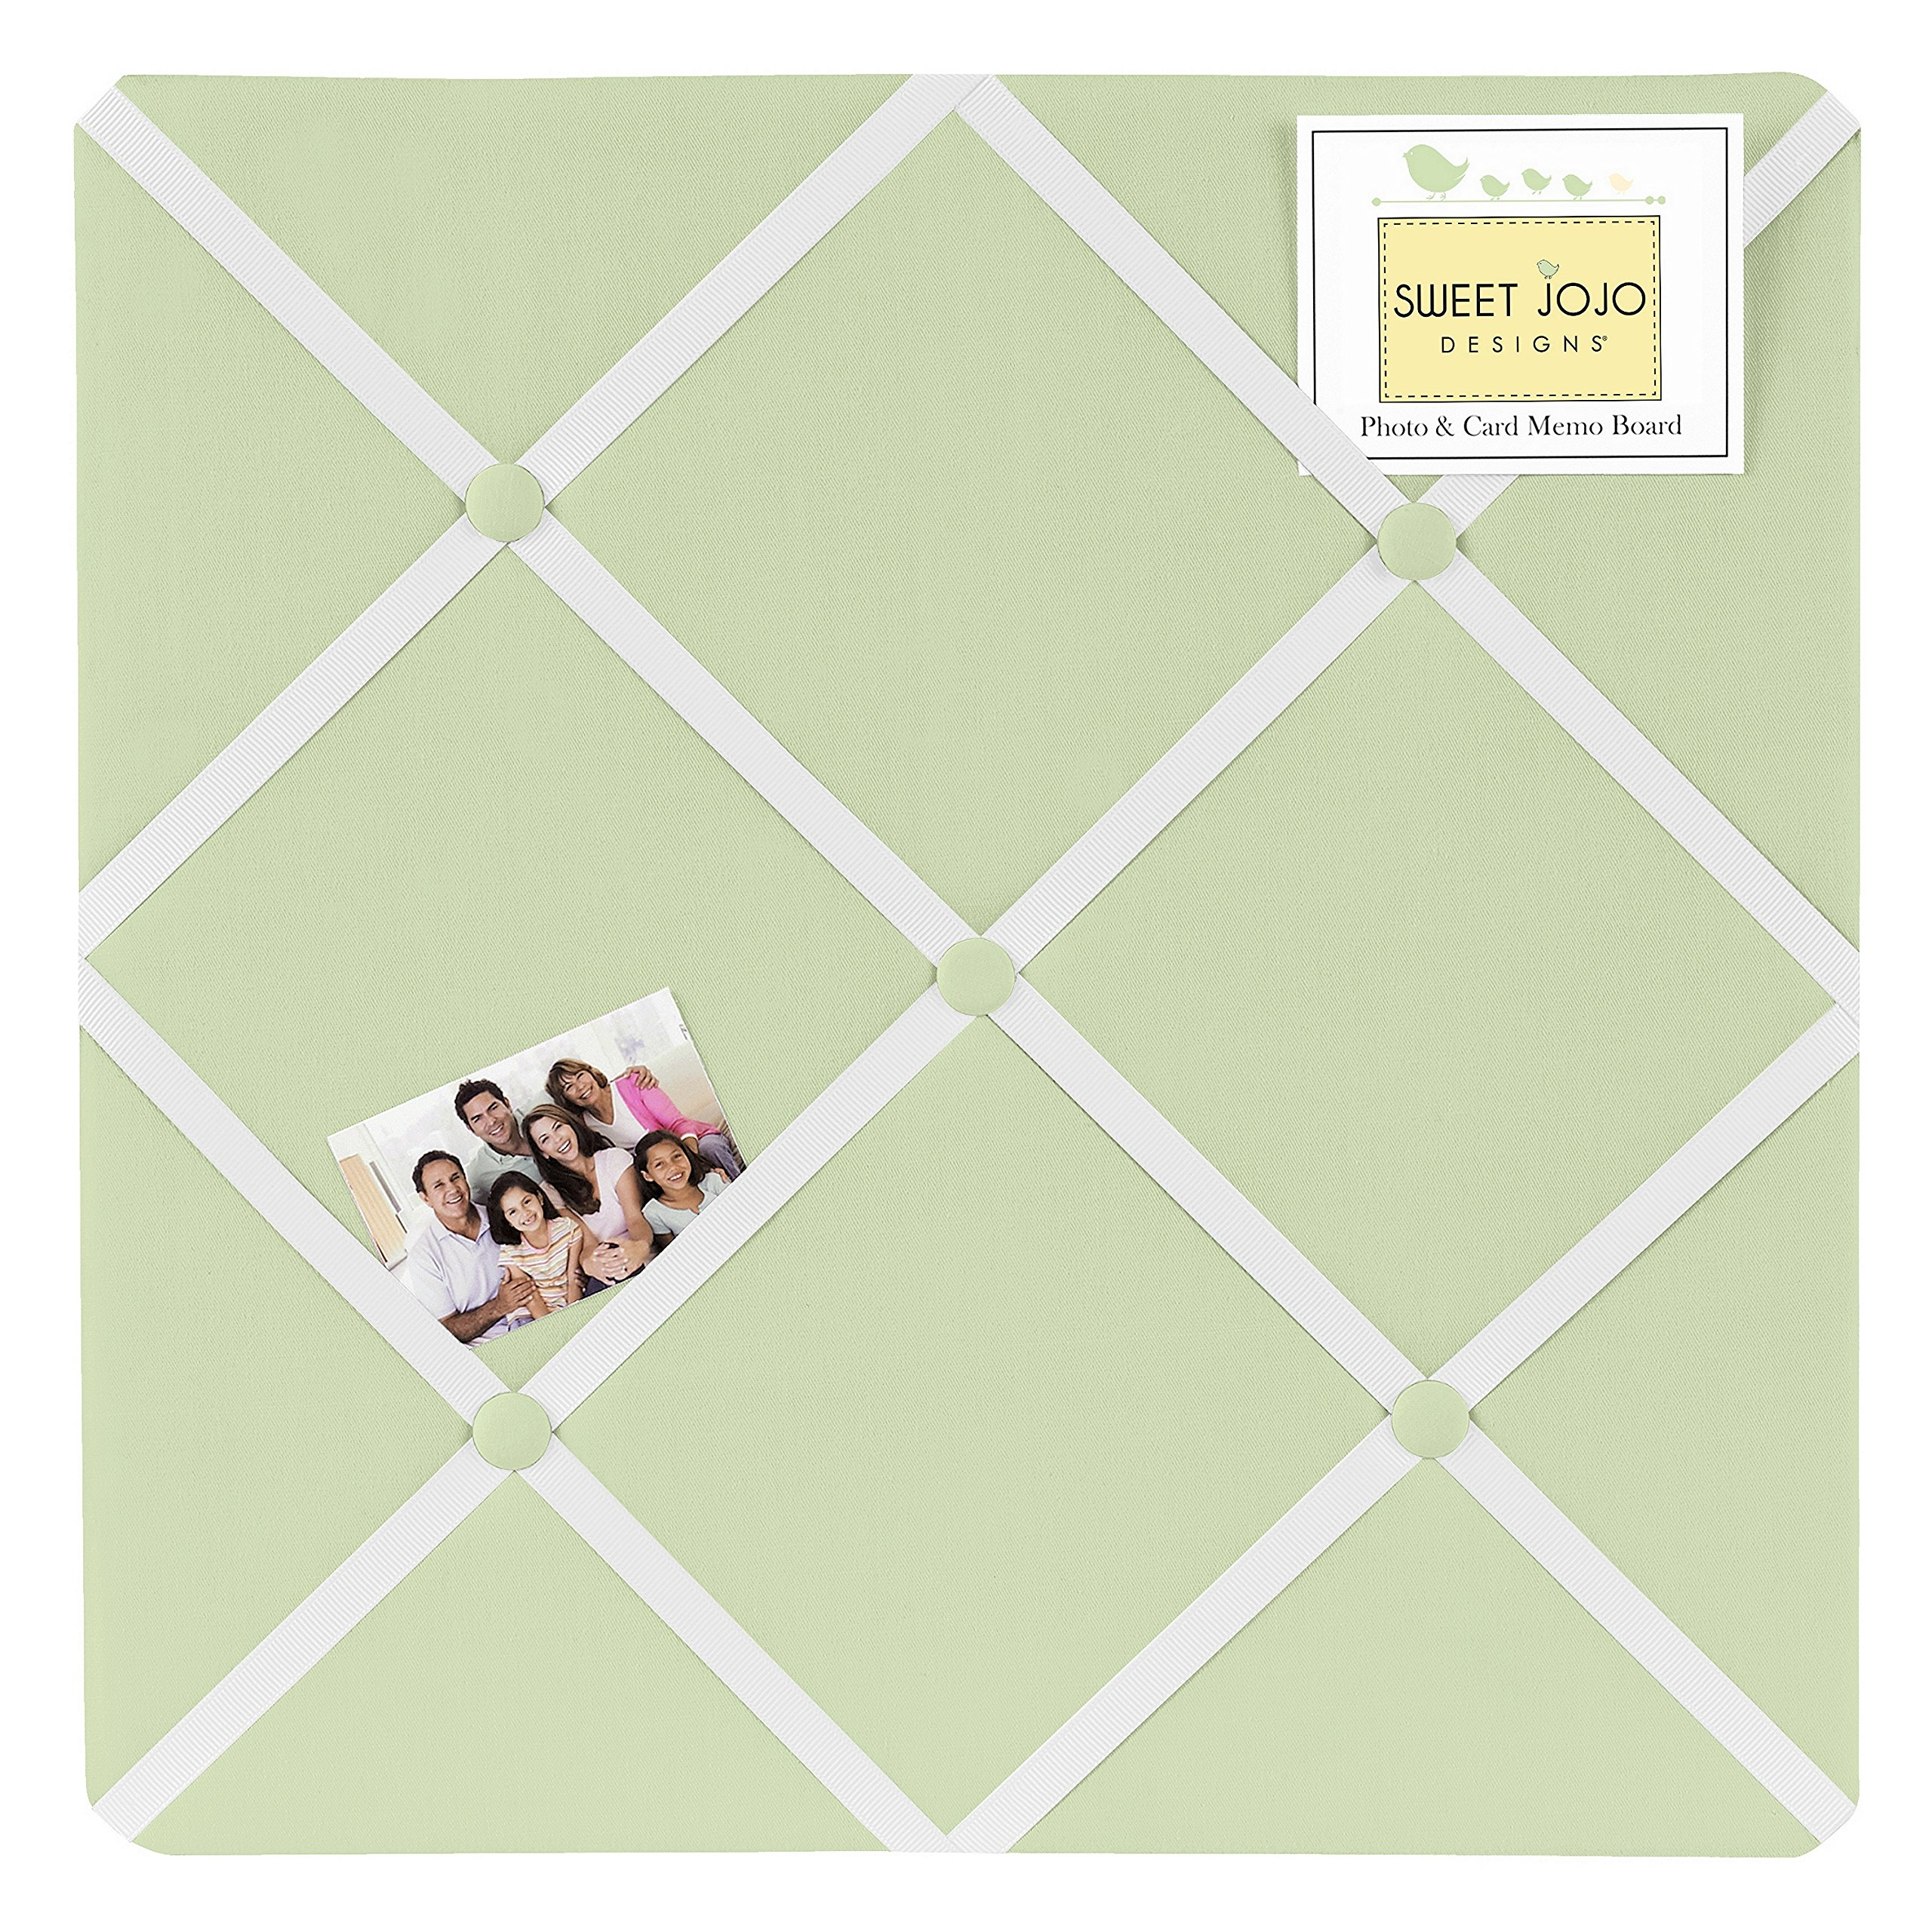 Sweet Jojo Designs Light Green Fabric Memory/Memo Photo Bulletin Board